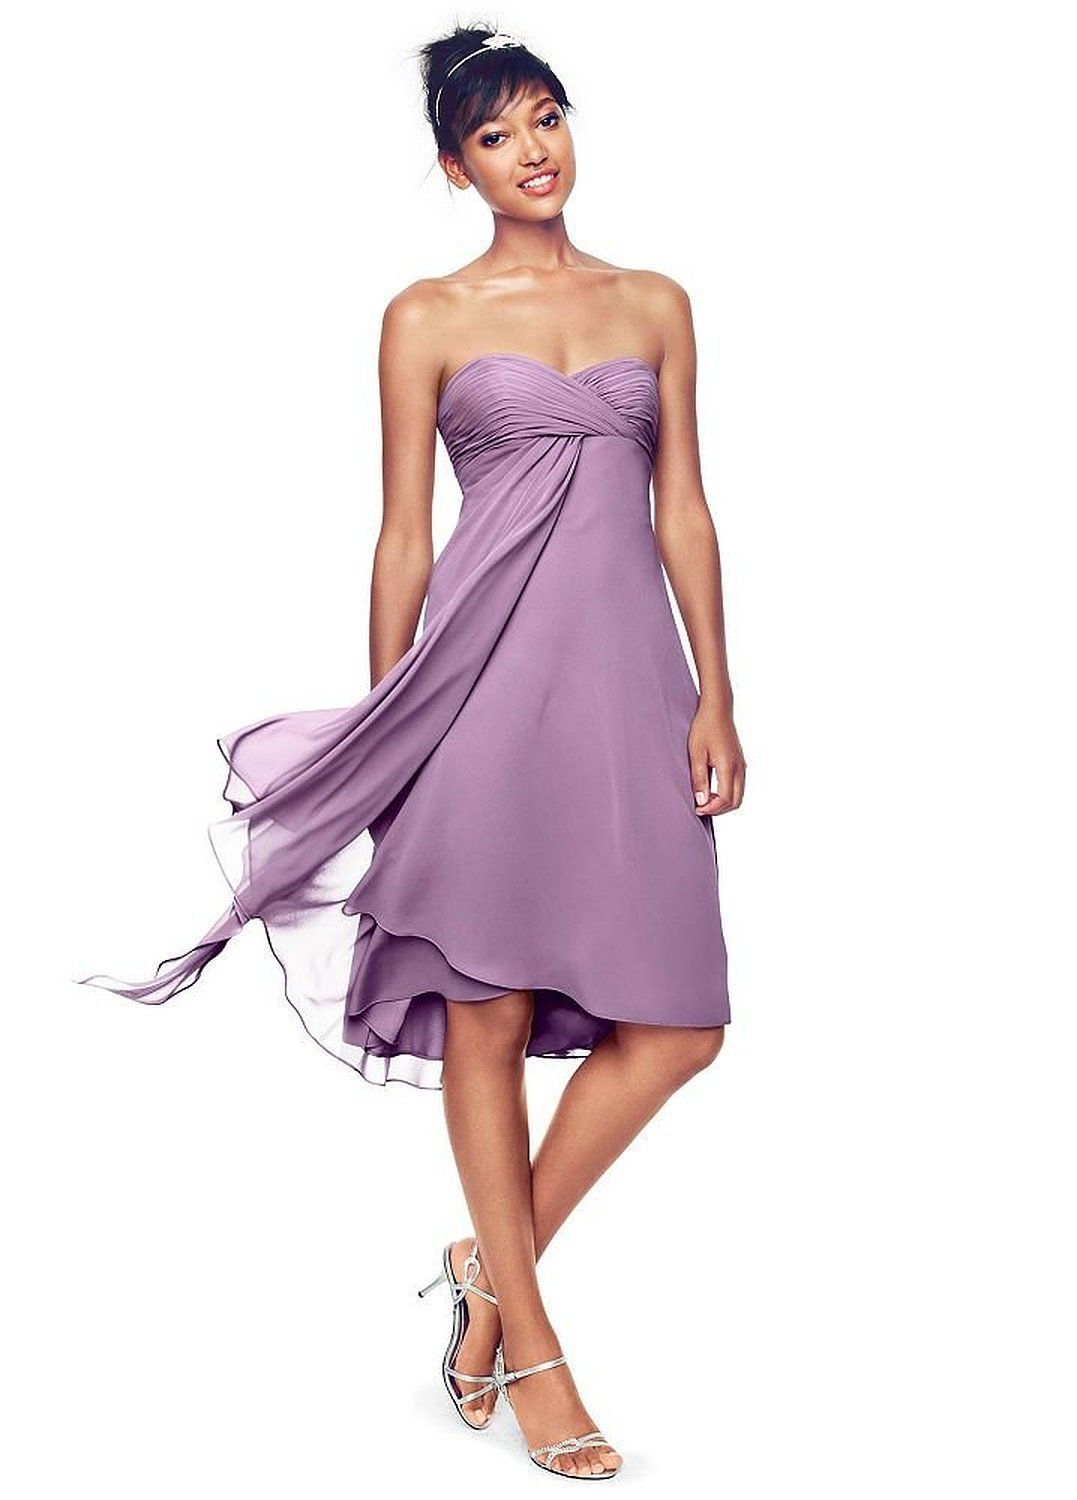 Strapless chiffon short dress style f bridesmaid dresses